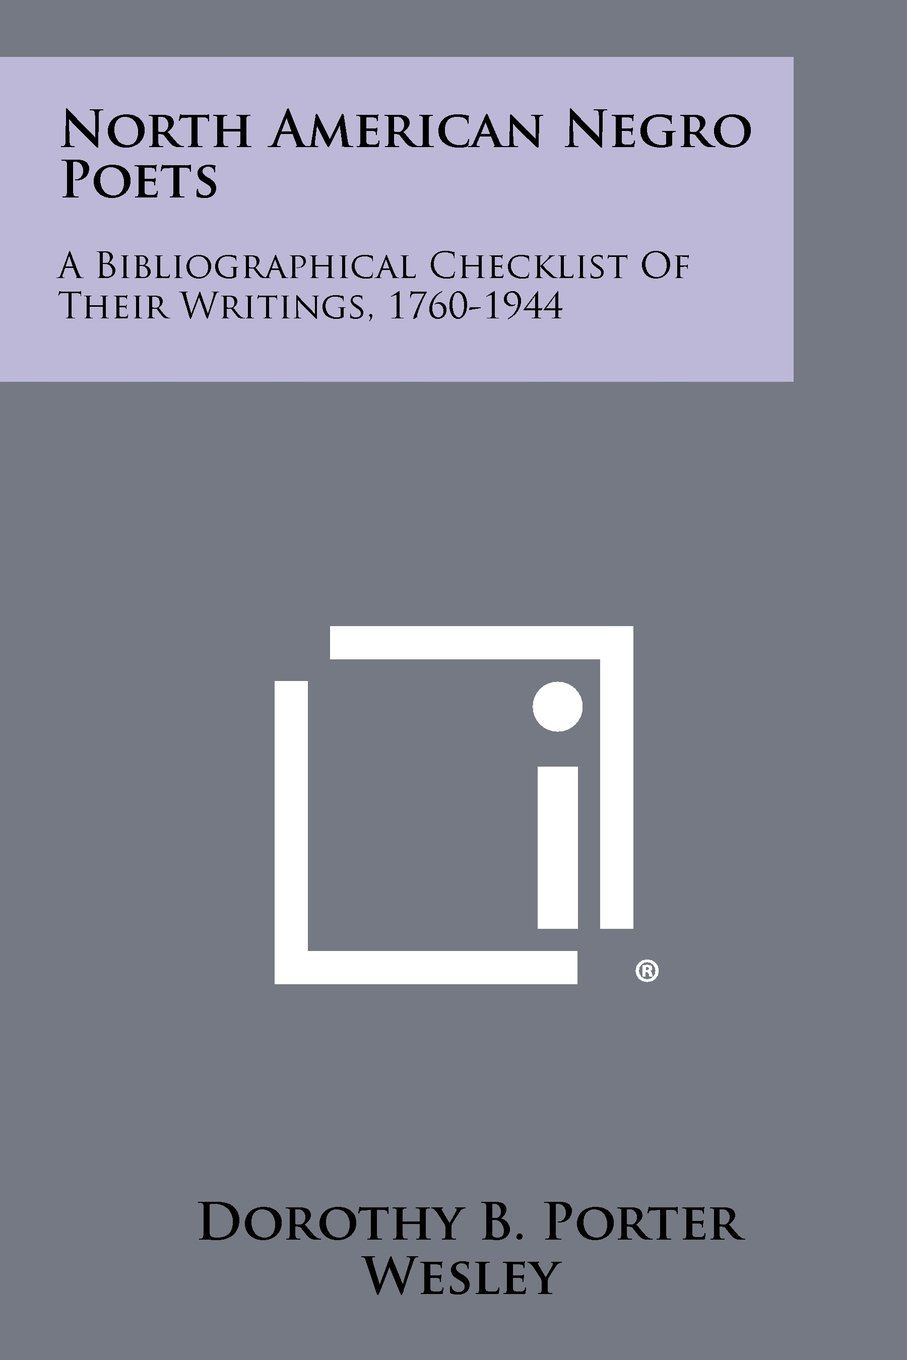 Download North American Negro Poets: A Bibliographical Checklist of Their Writings, 1760-1944 ebook